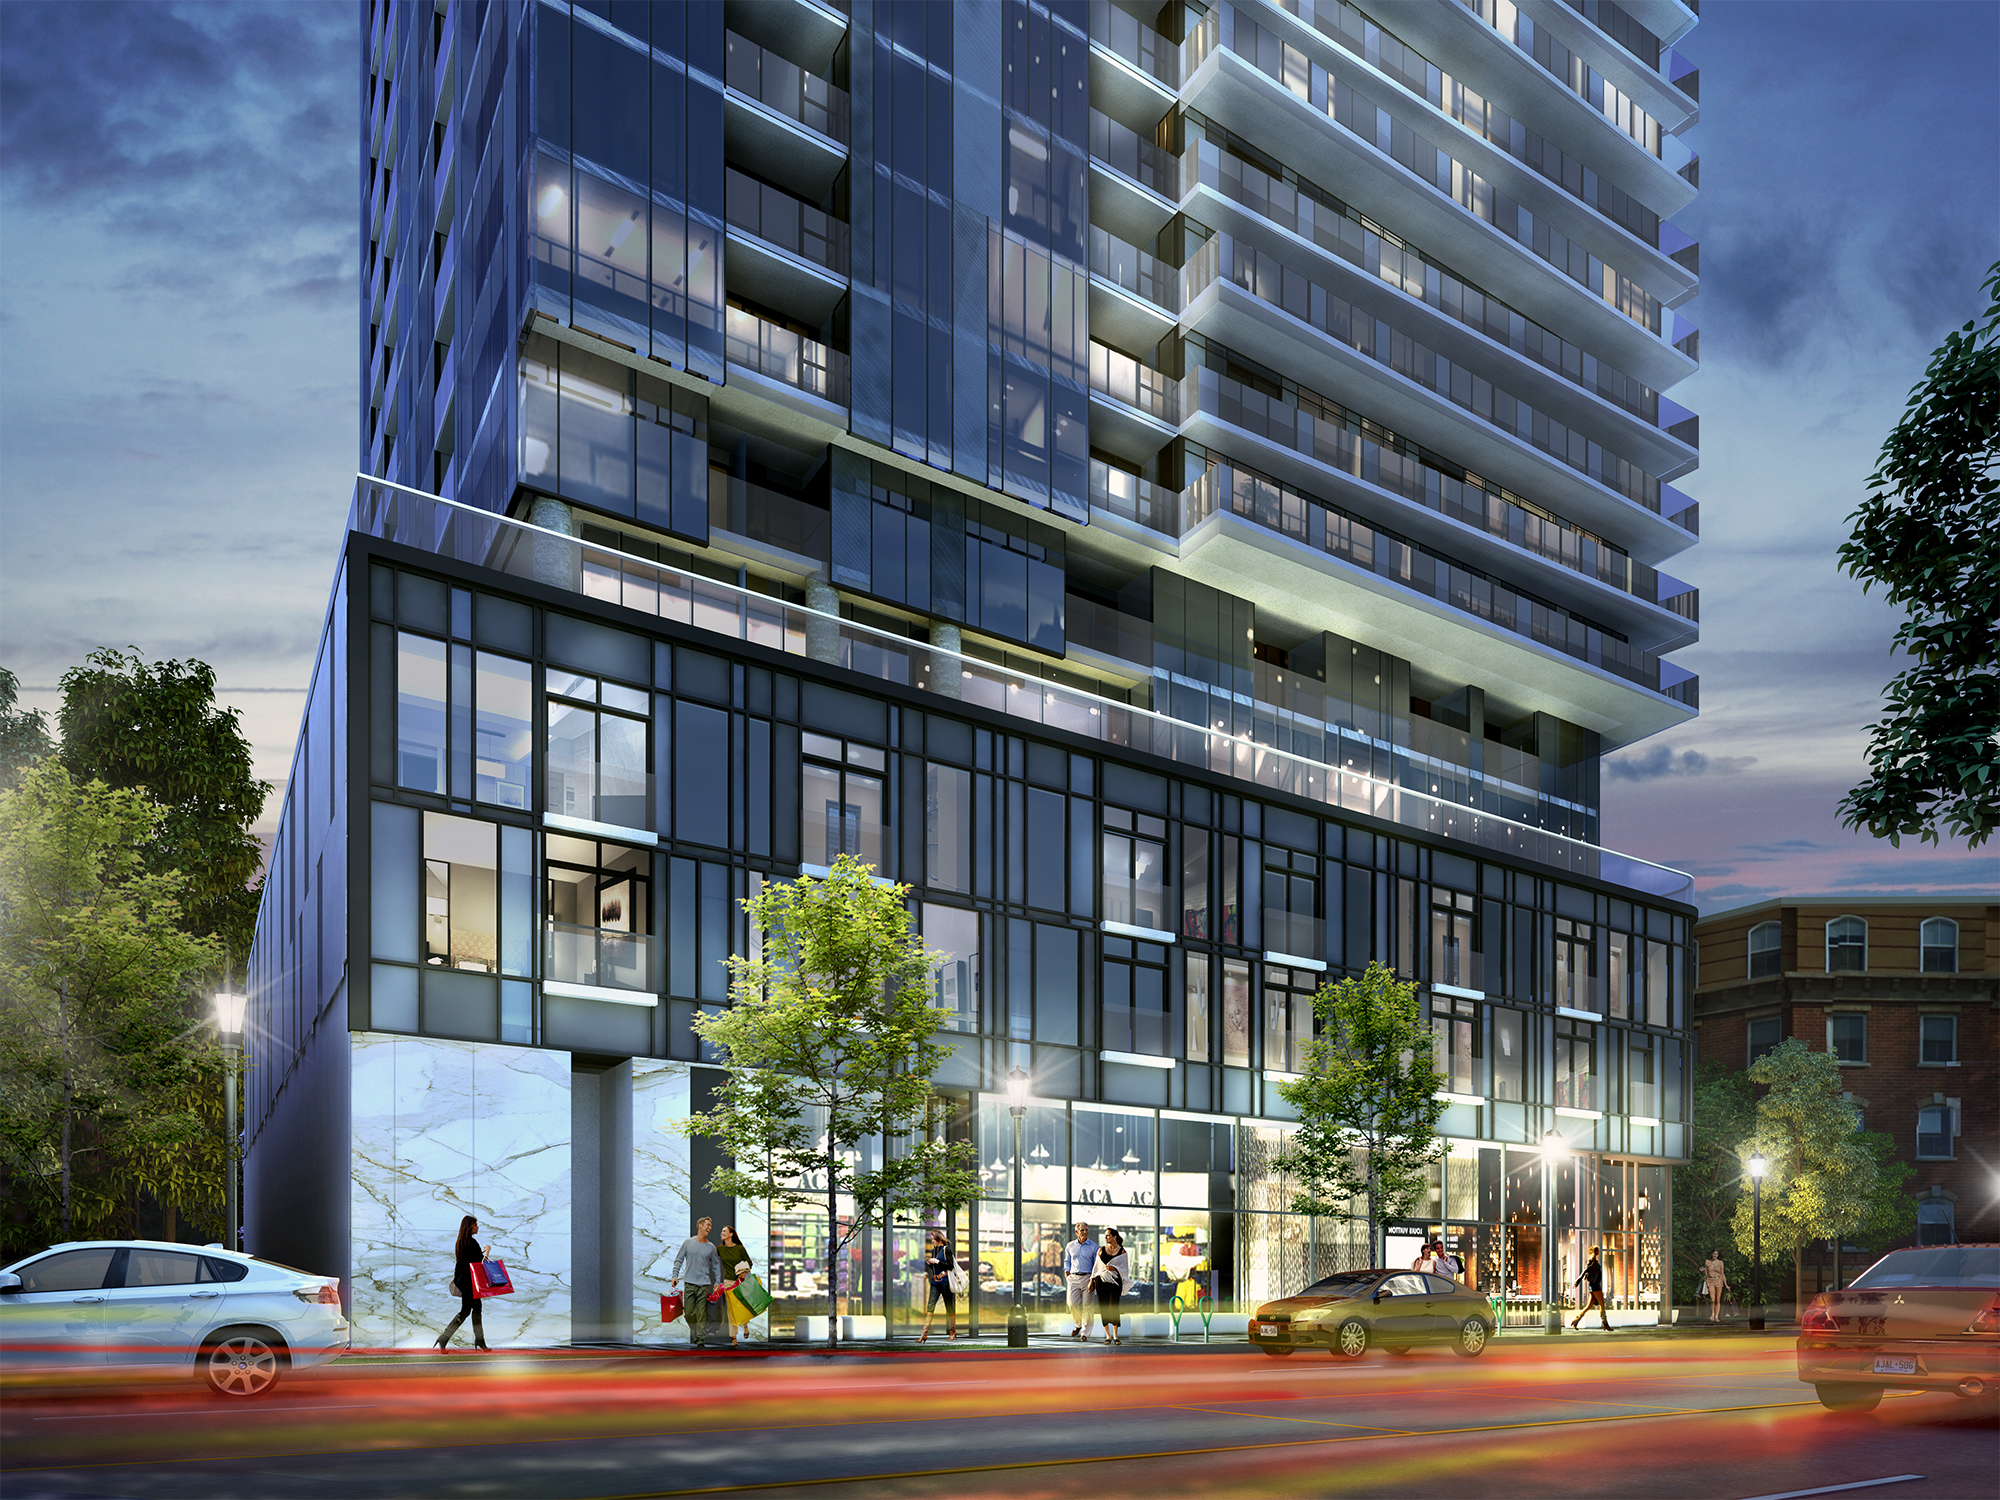 Artful interplays of grey and white glass compose Nautique's stunning five-storey podium above the lobby entrance